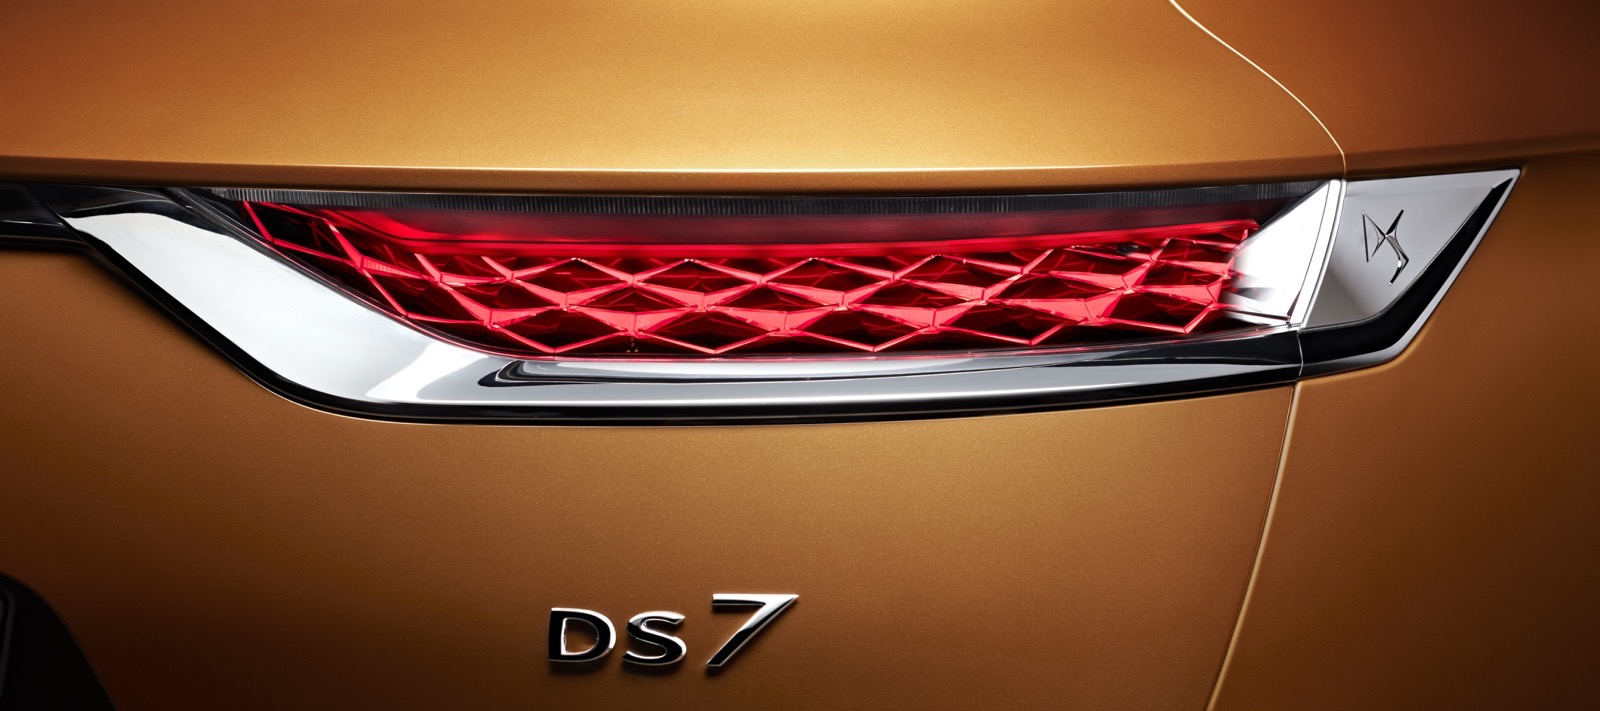 DS_7_Crossback_19